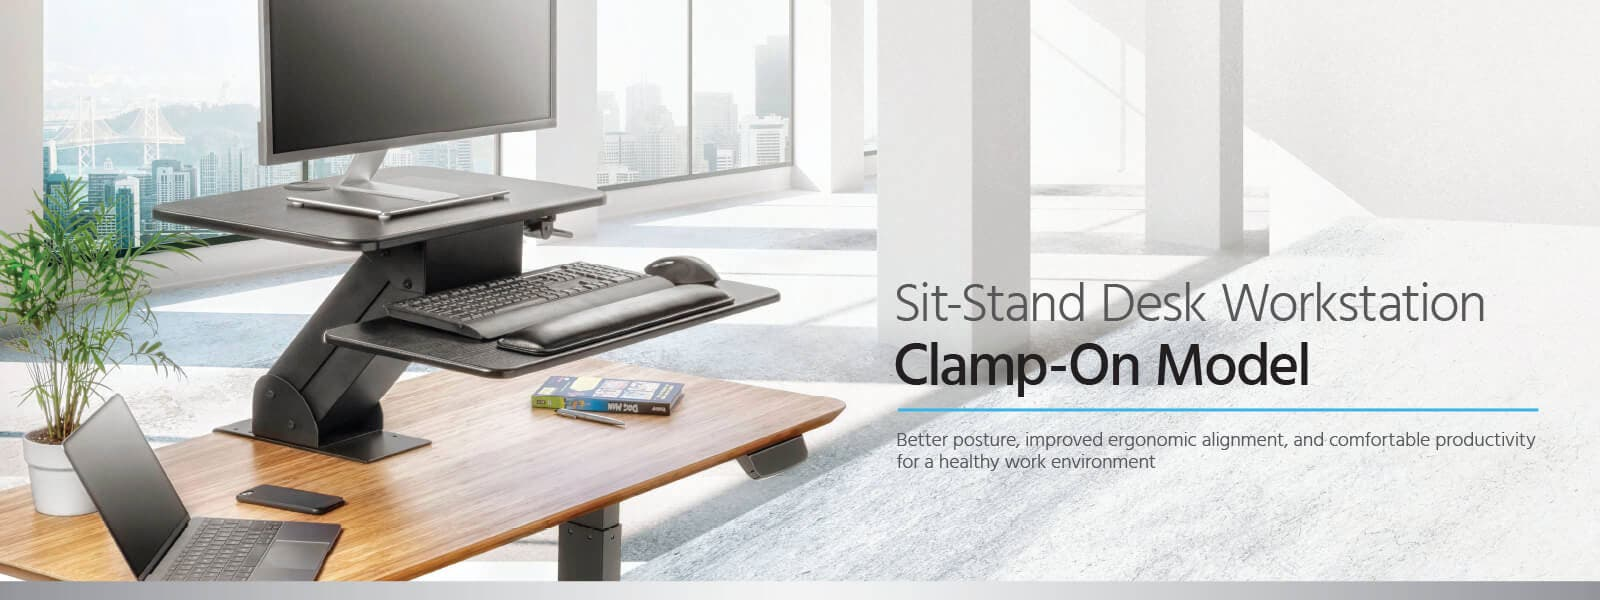 Sit-Stand Desk Workstation